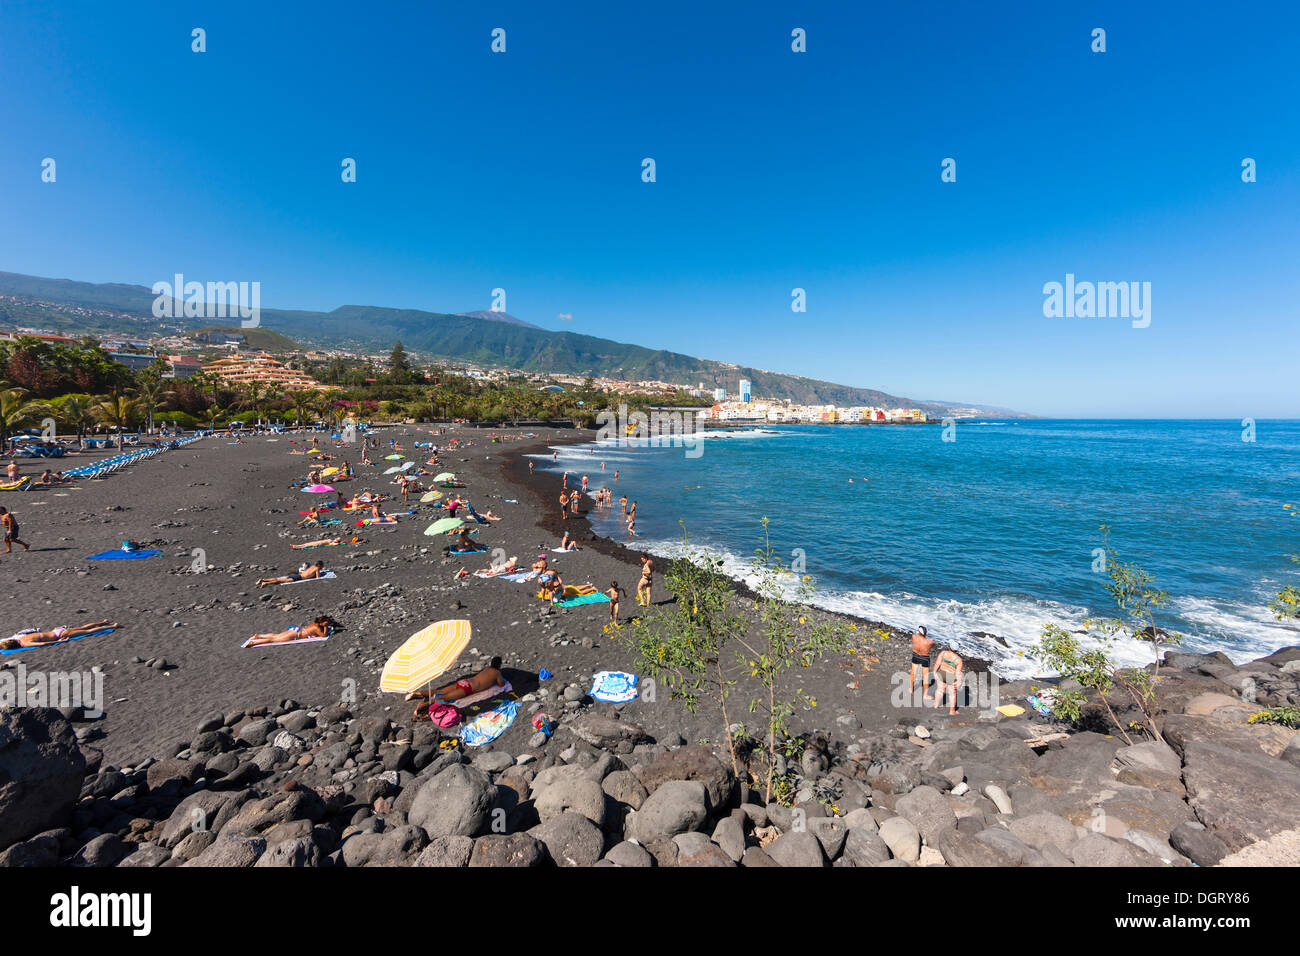 Playa jardin beach in puerto de la cruz puerto de la cruz for Aparthotel jardin de playa